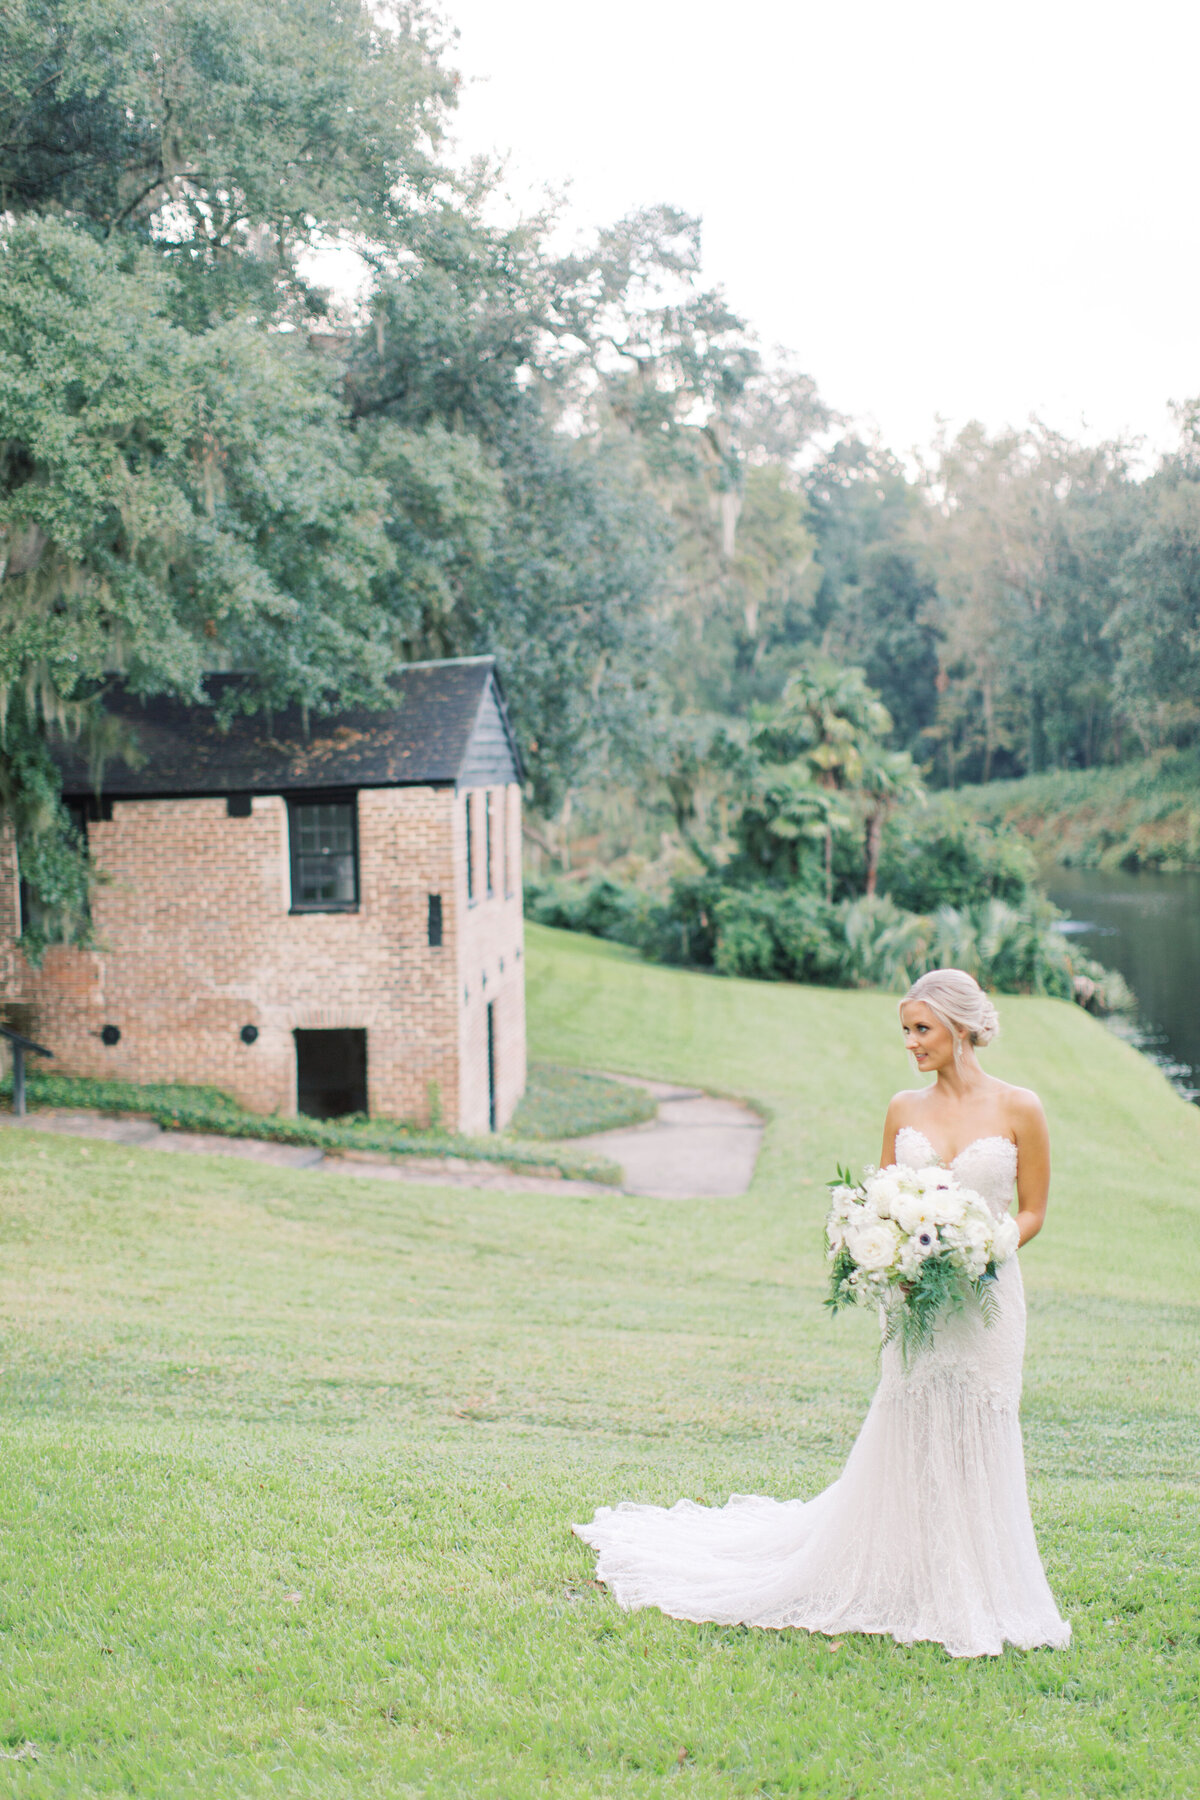 Melton_Wedding__Middleton_Place_Plantation_Charleston_South_Carolina_Jacksonville_Florida_Devon_Donnahoo_Photography__0279